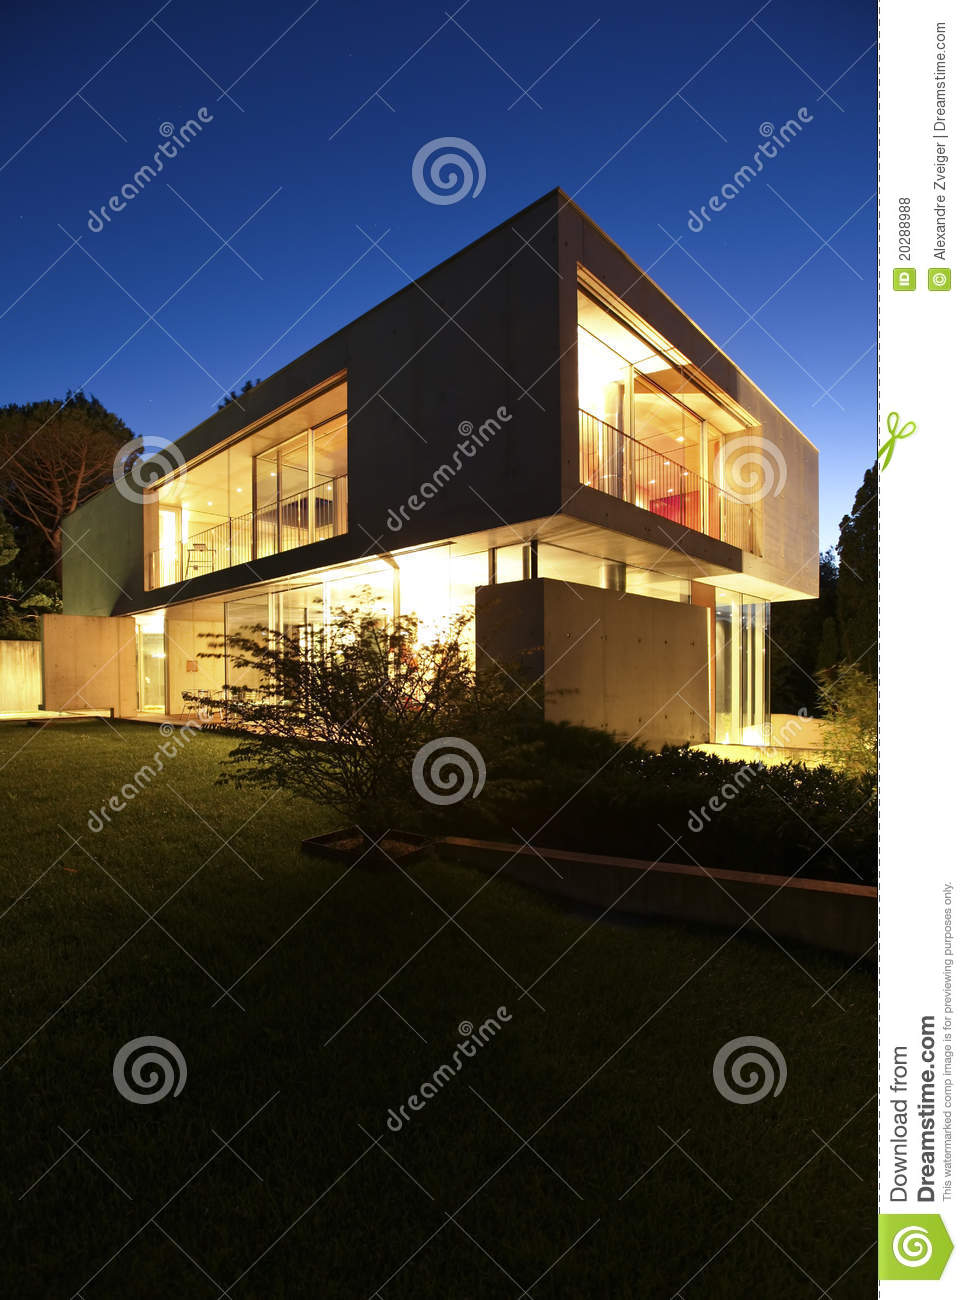 Beautiful modern house outdoors at night royalty free for Modern house at night